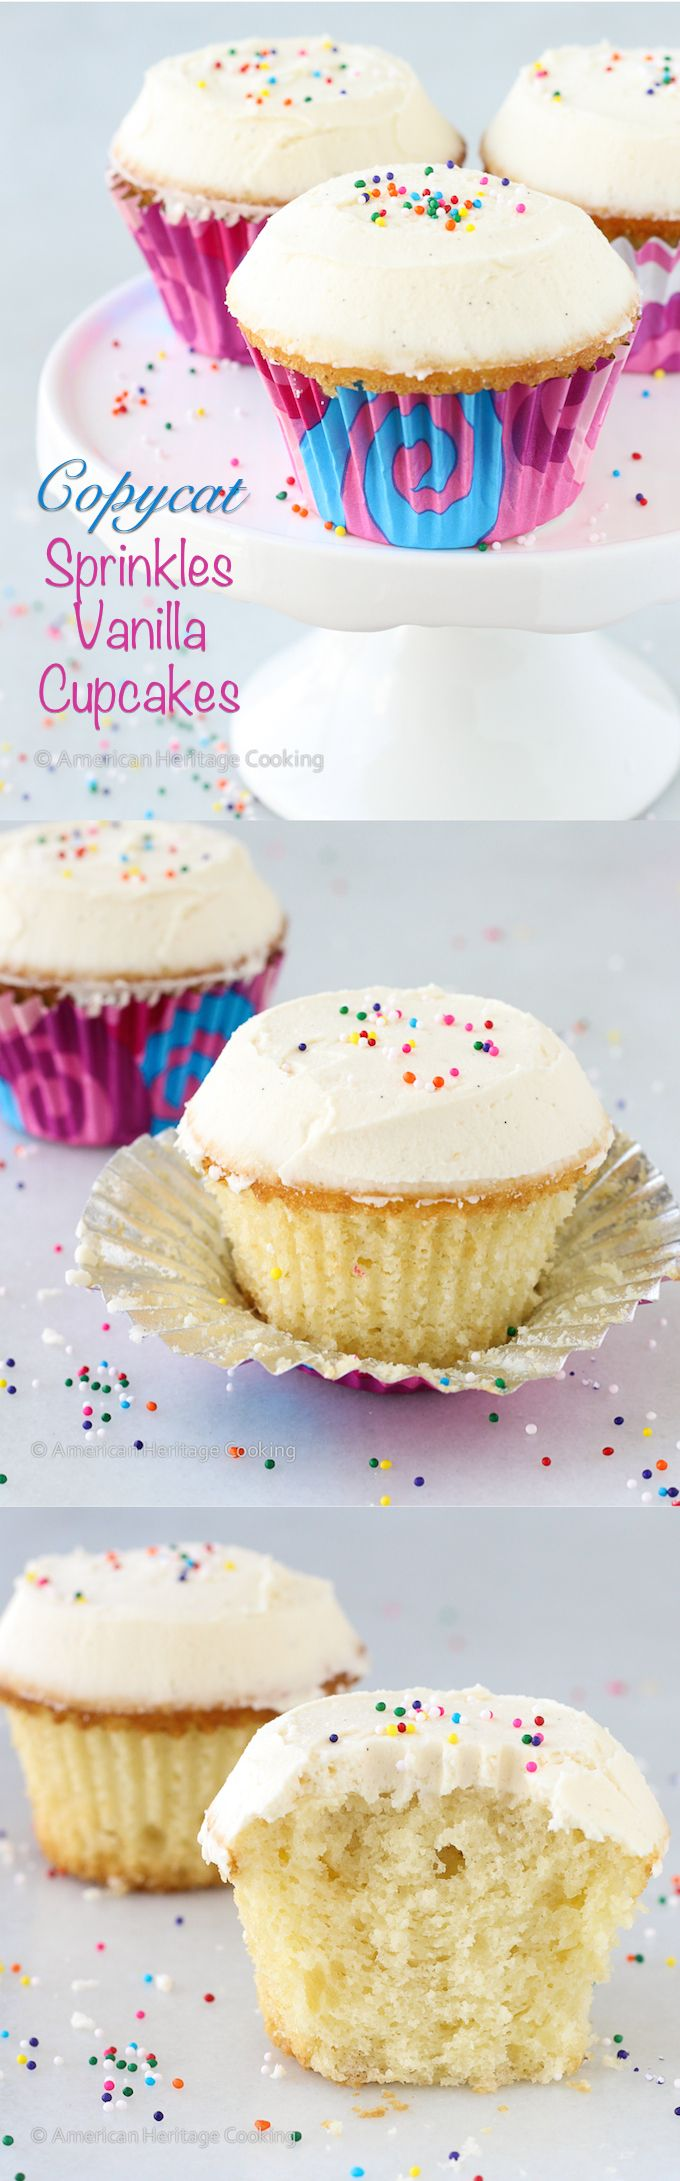 Sprinkles Copycat Vanilla Cupcakes - absolute best cupcakes I've ever had. I will never use another recipe.